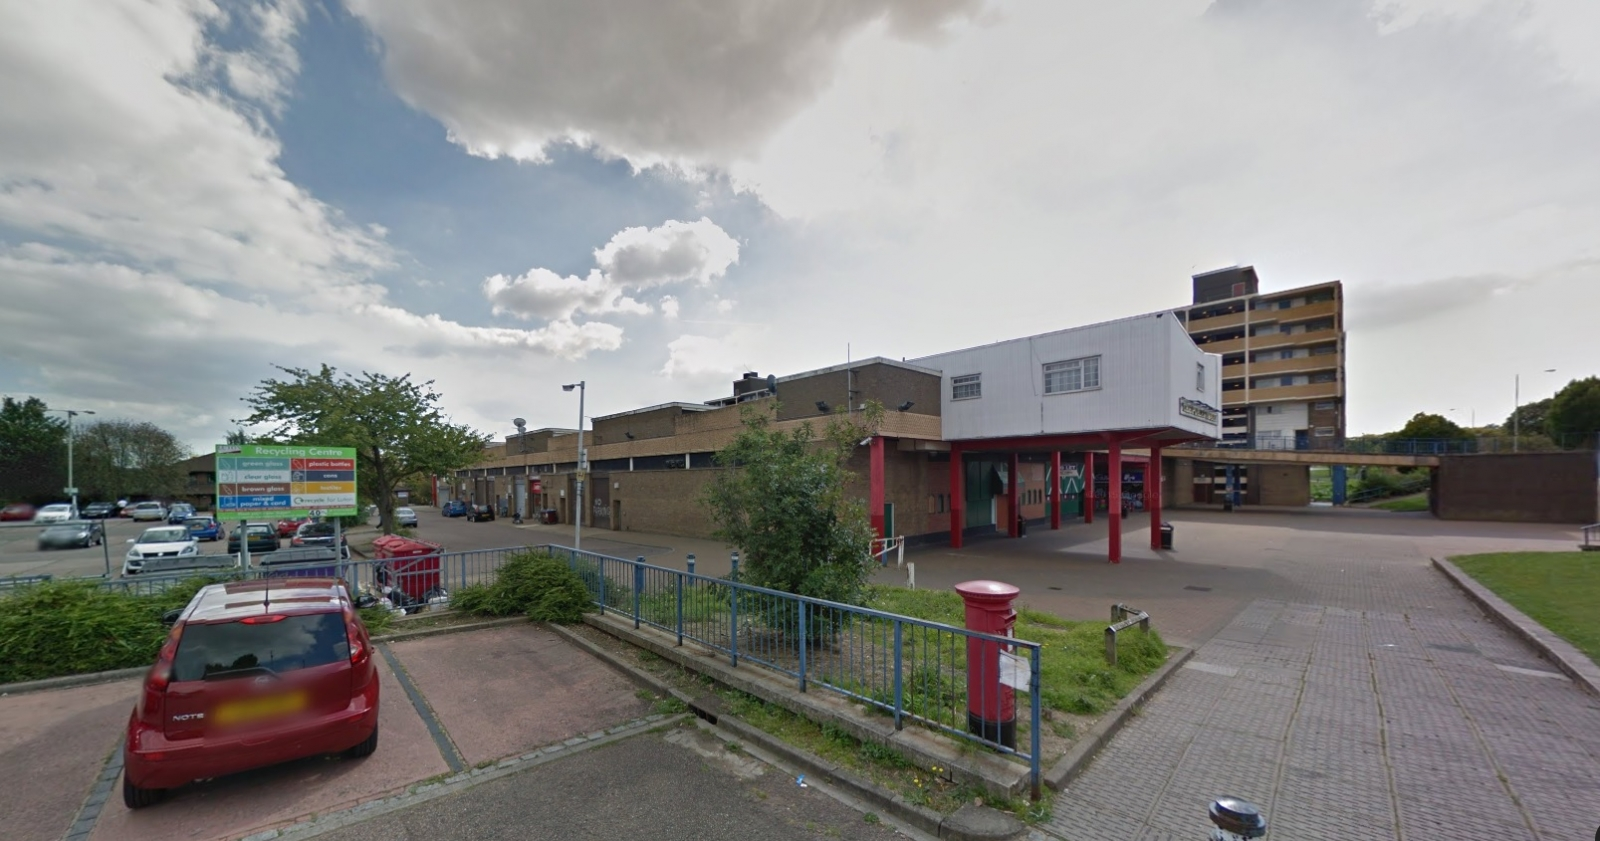 Purley Centre Luton via Google Maps